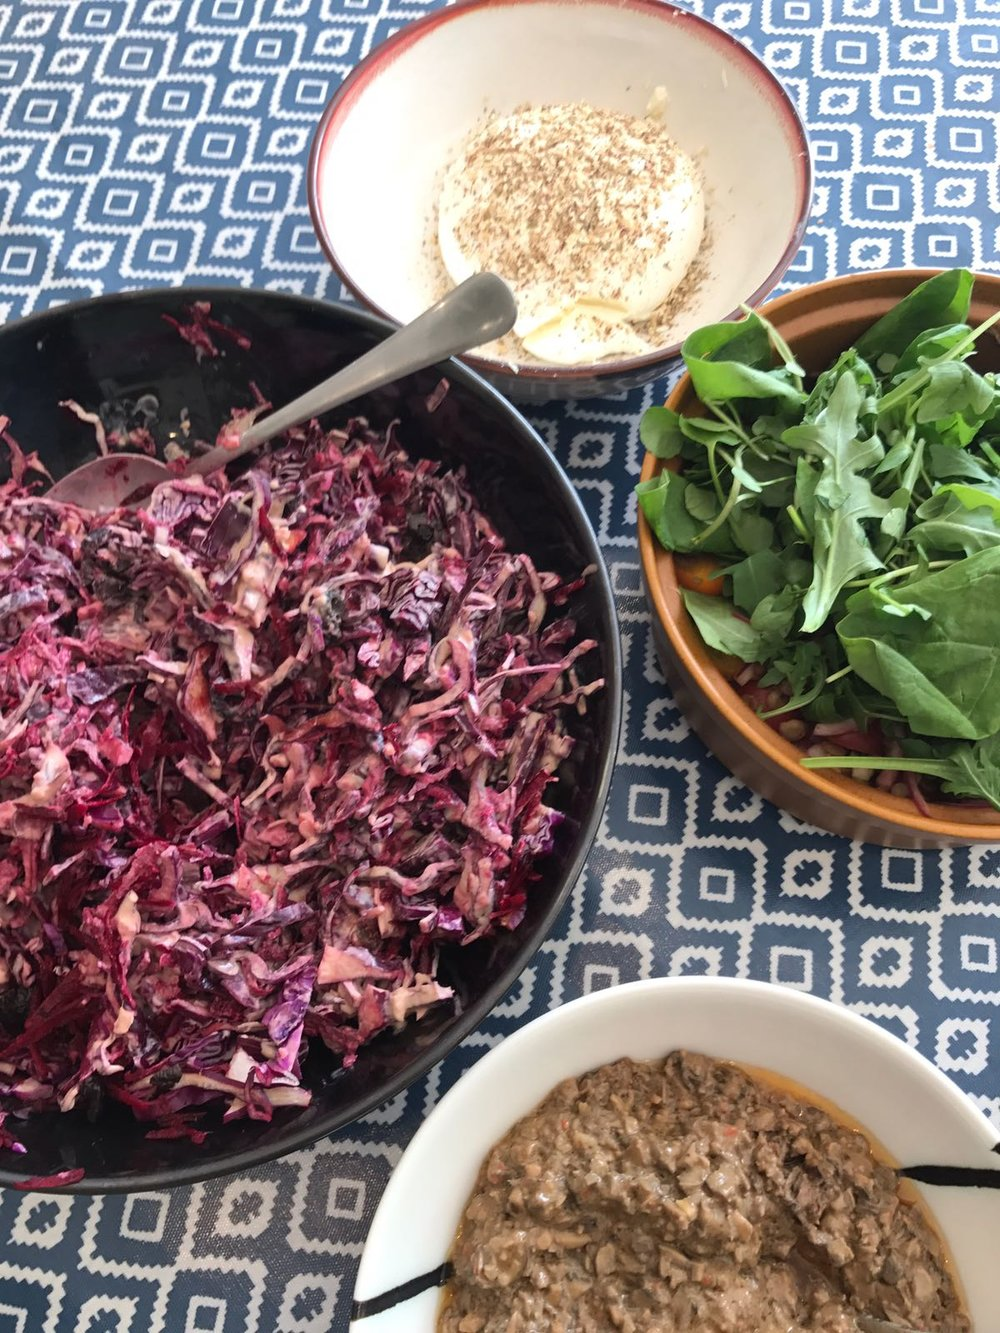 Red Cabbage, Black Olive and Beetroot Coleslaw, Cambodian wedding Day Dip,  Labneh and Lentil and Tomato Salad (before I mixed it!)